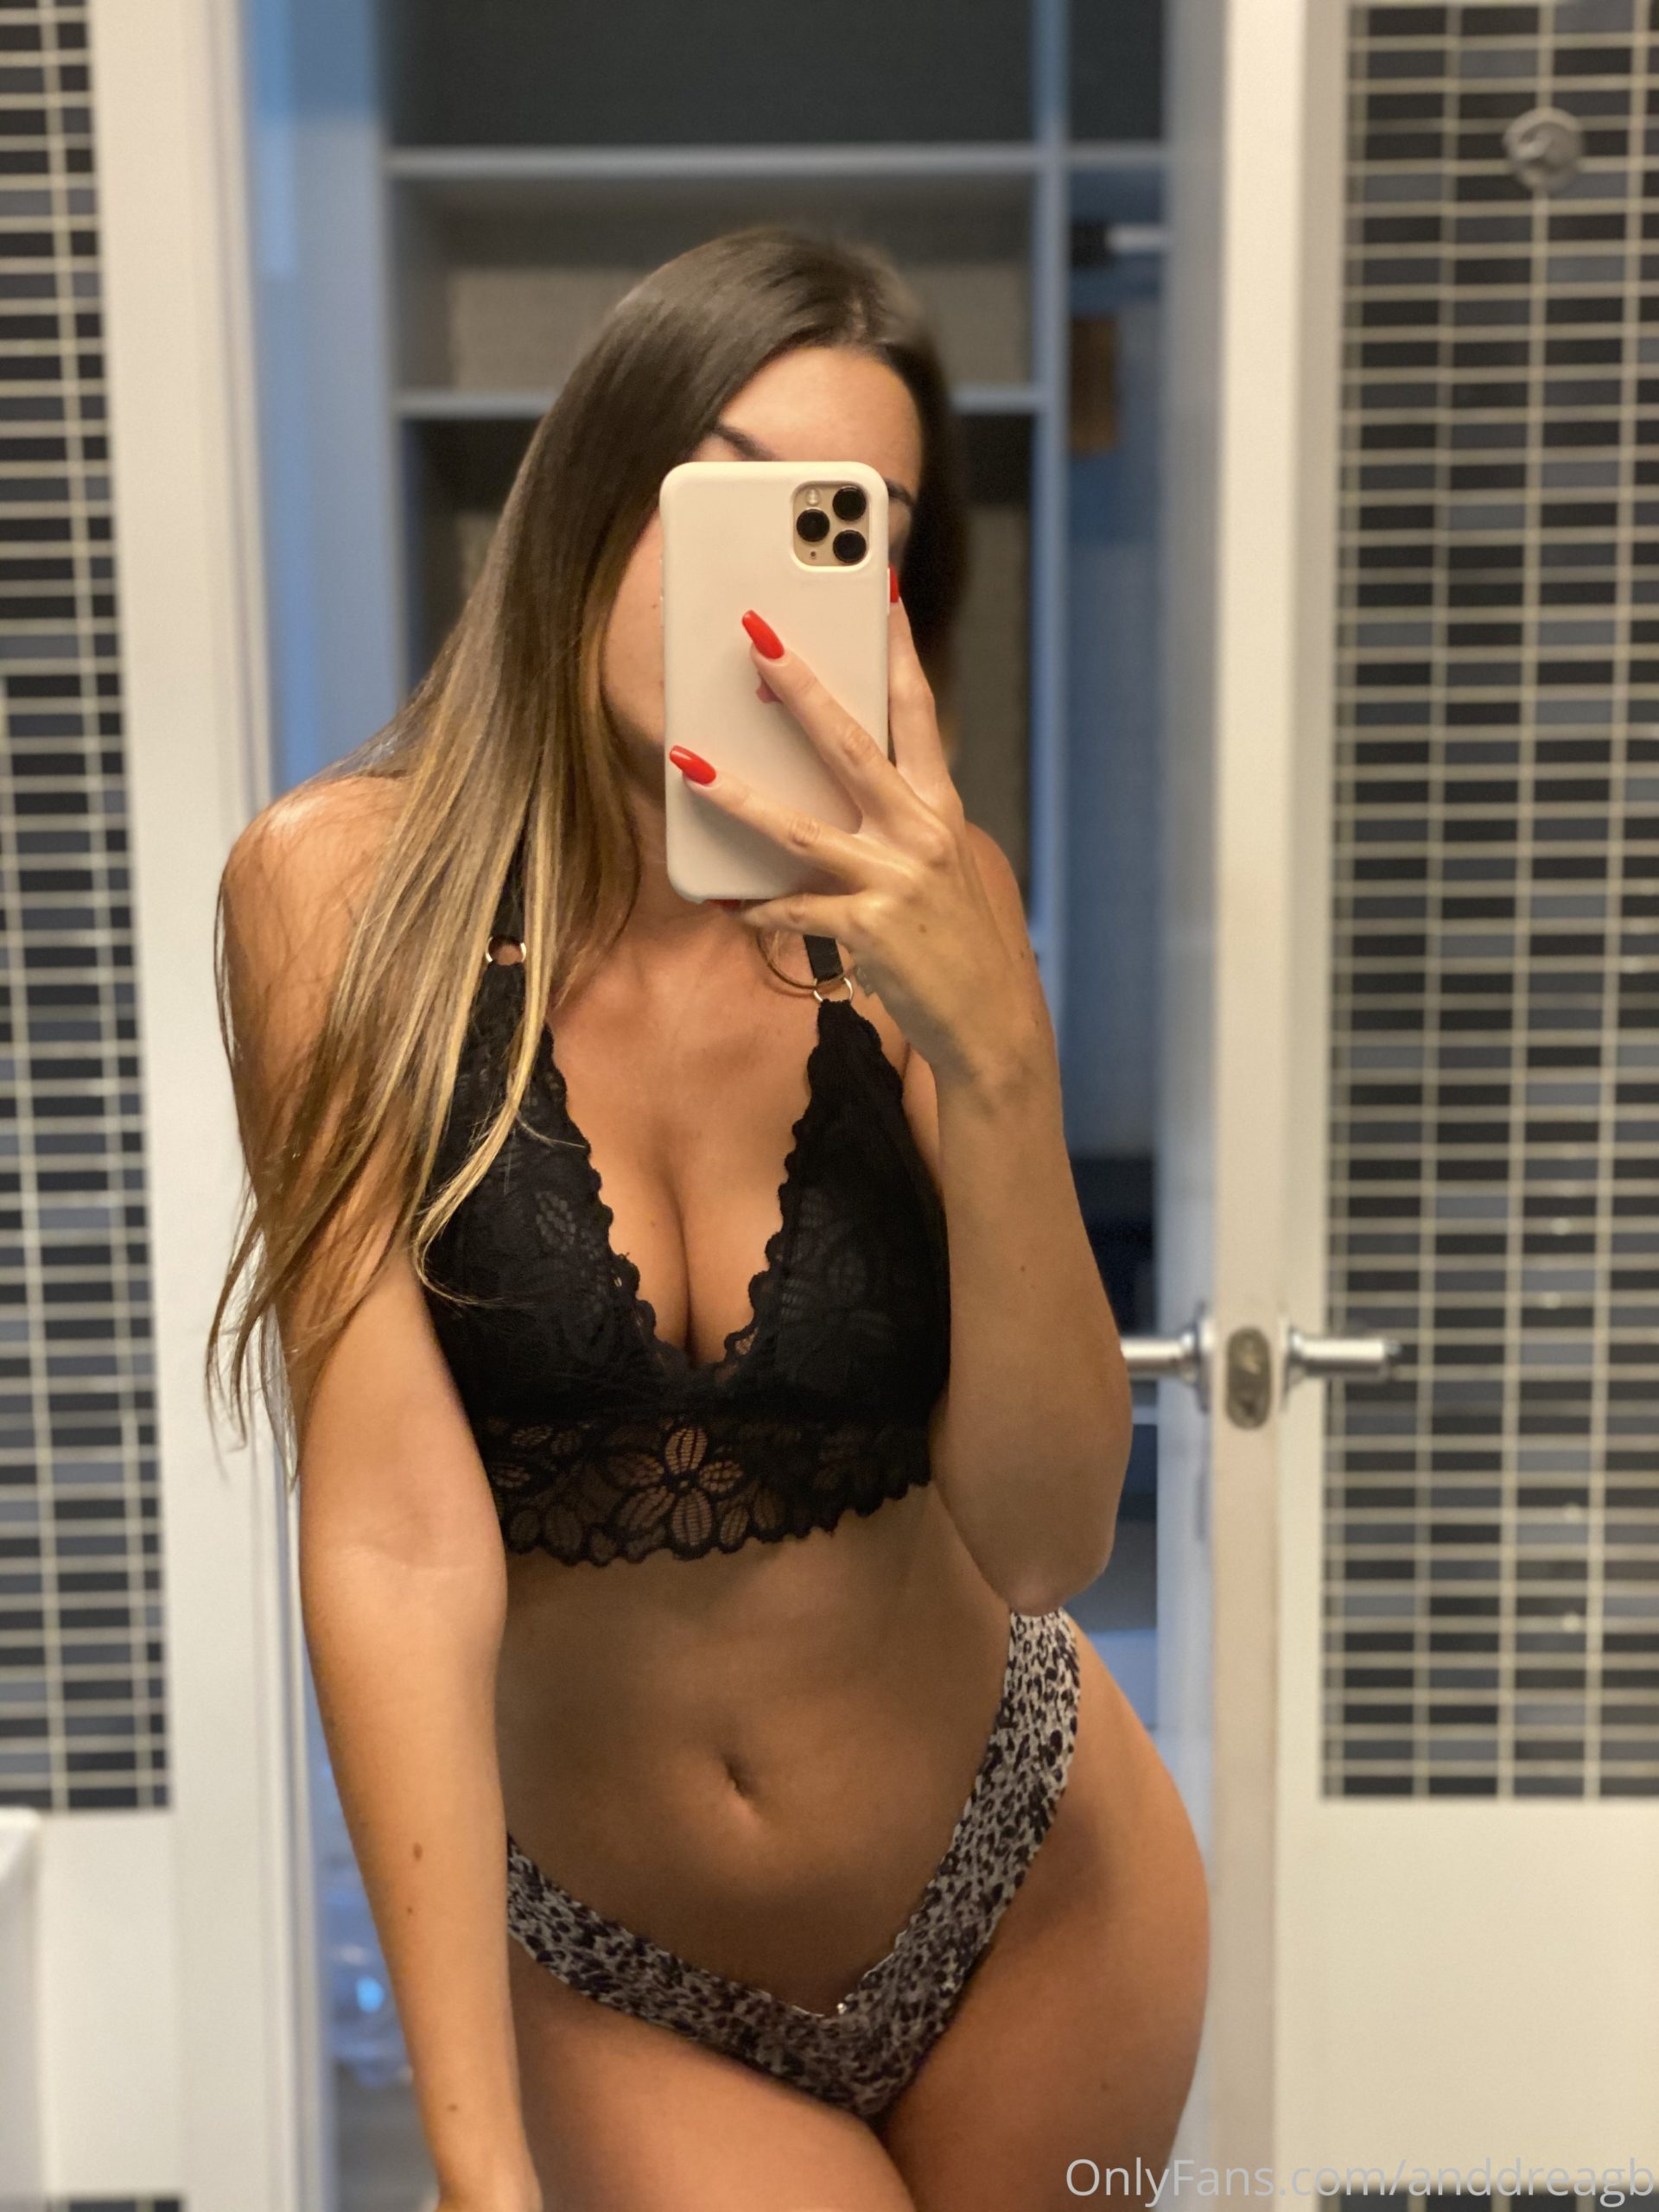 Anddreagb Onlyfans Gallery Leaked